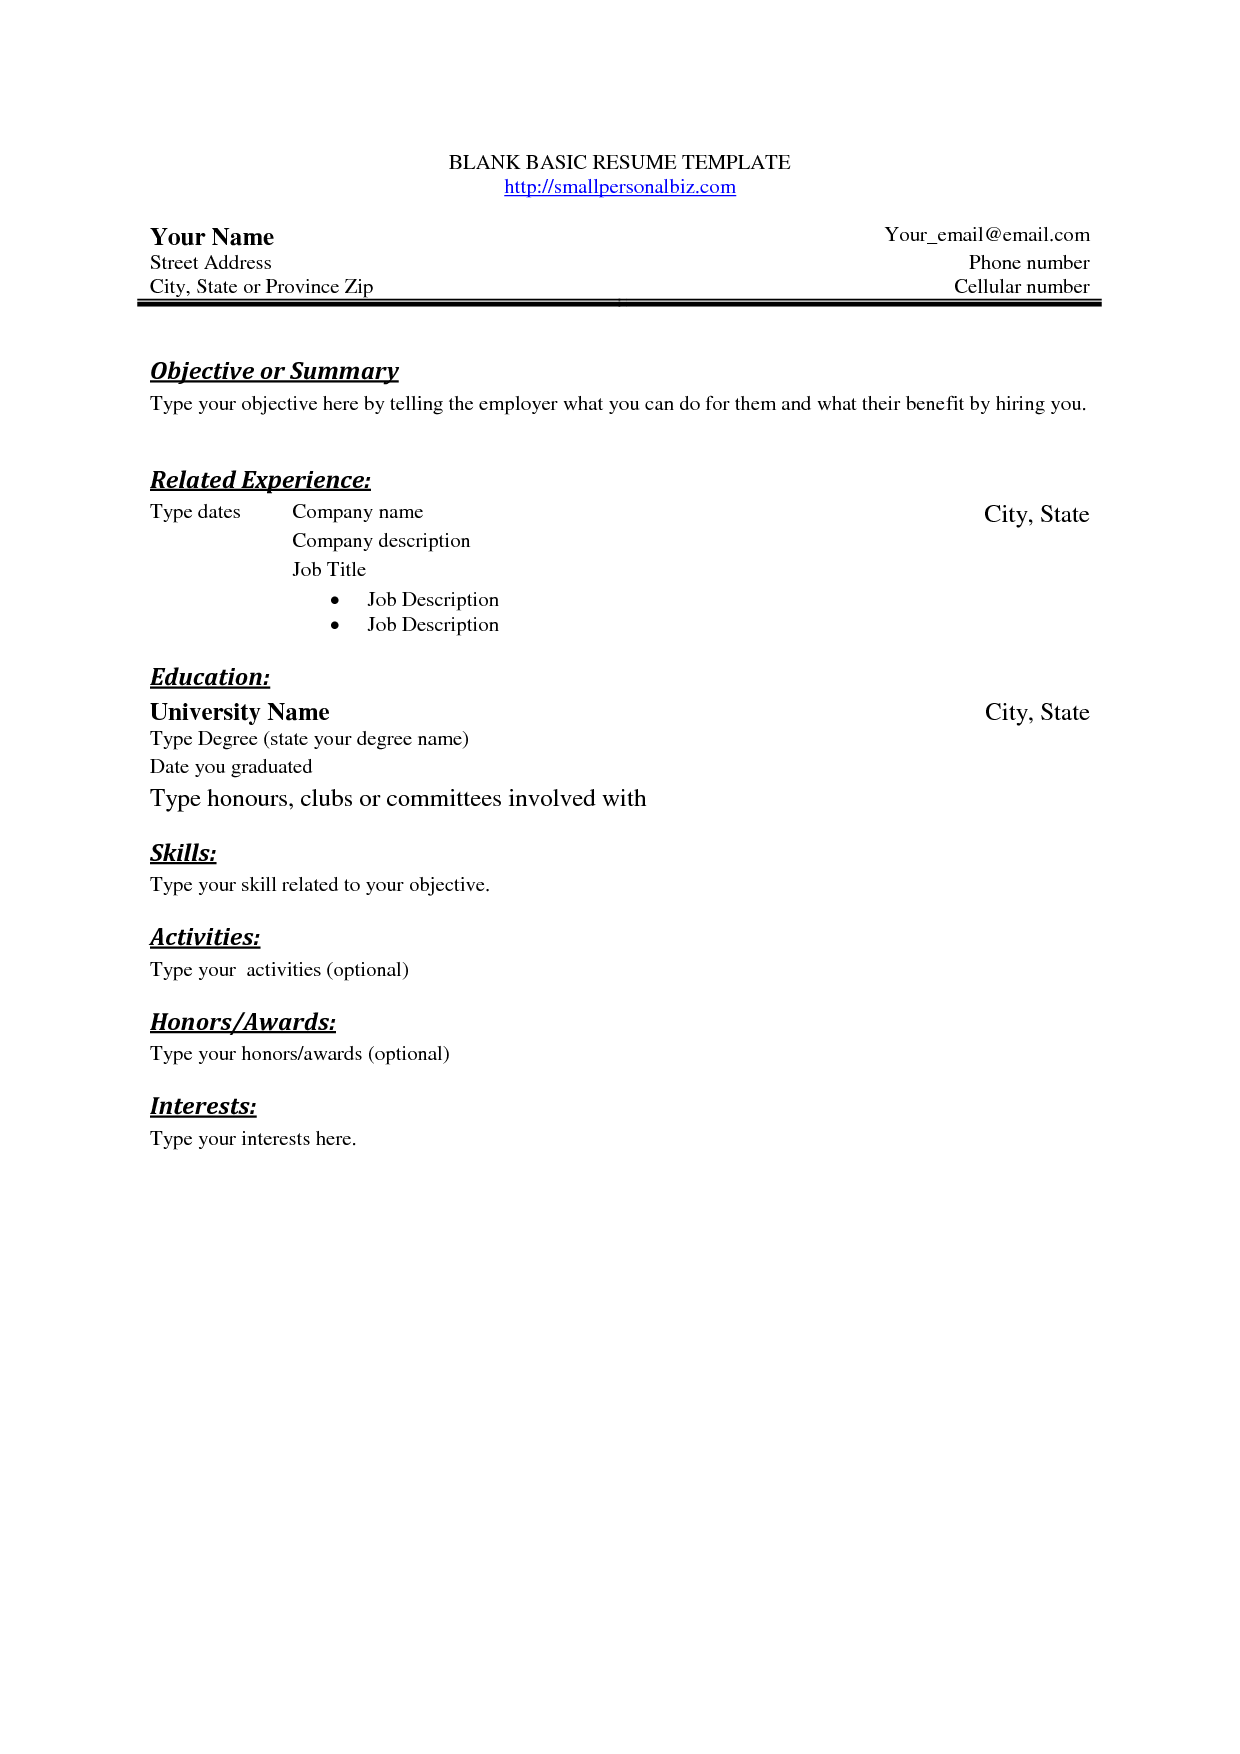 easy sample resume format easy sample resume - Easy Resume Builder Free